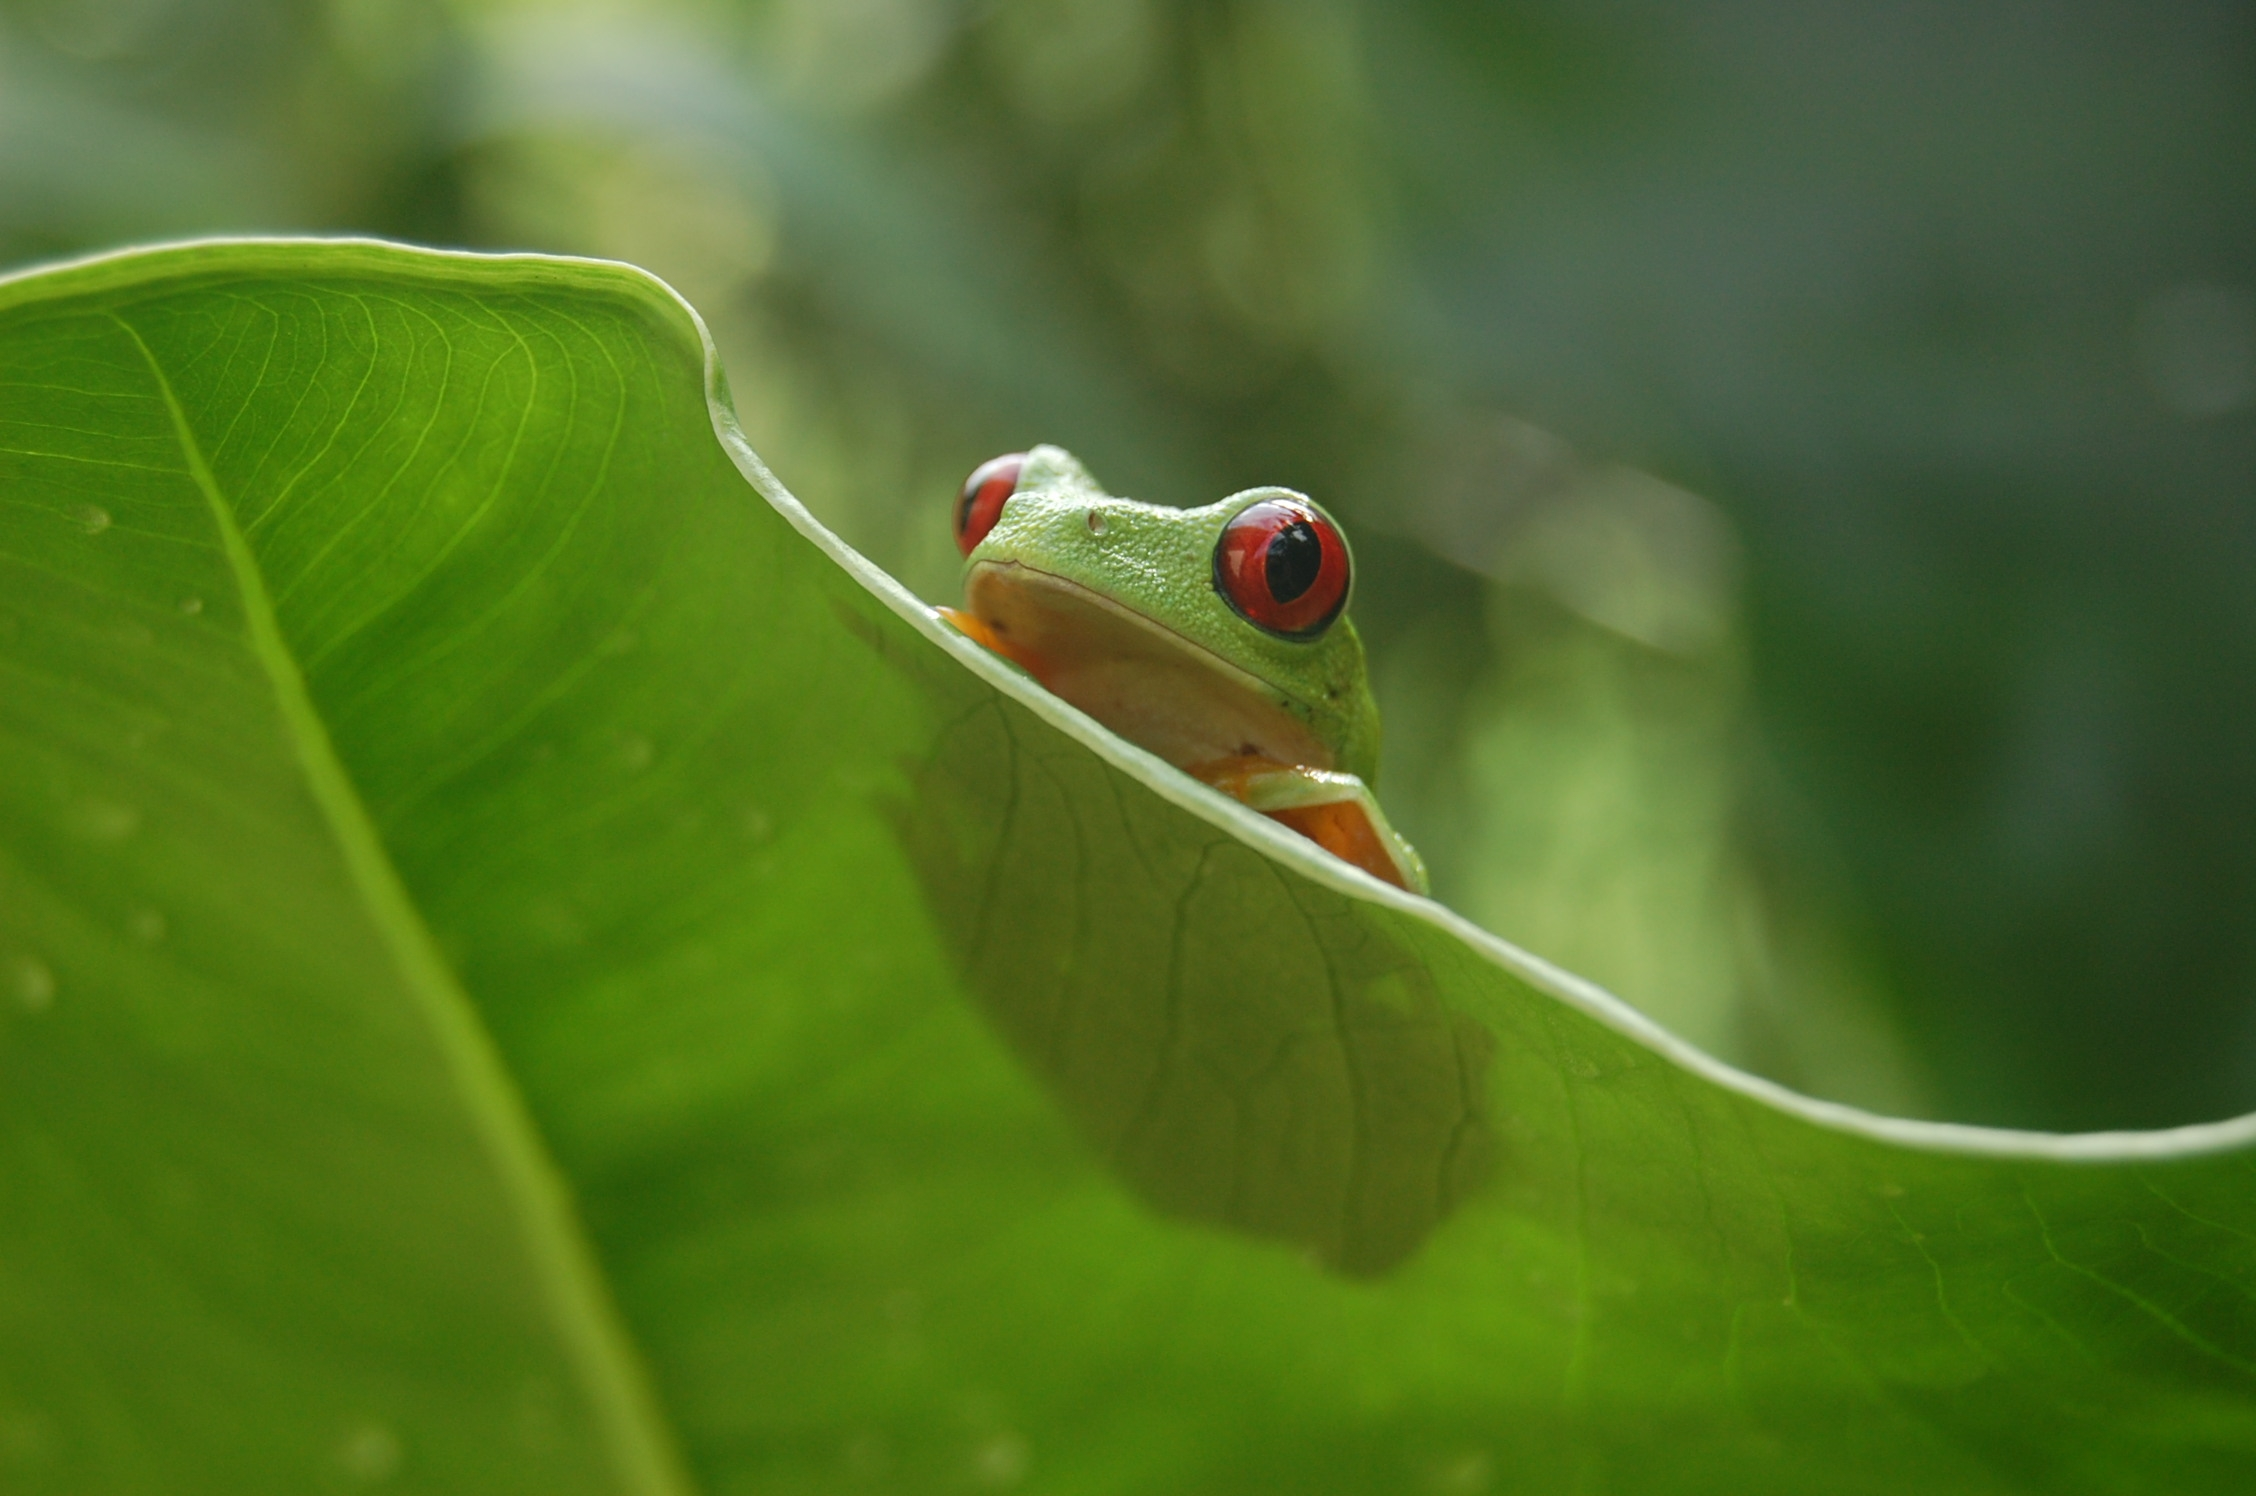 Red-eyed tree frog (Agalychnis calladryas)